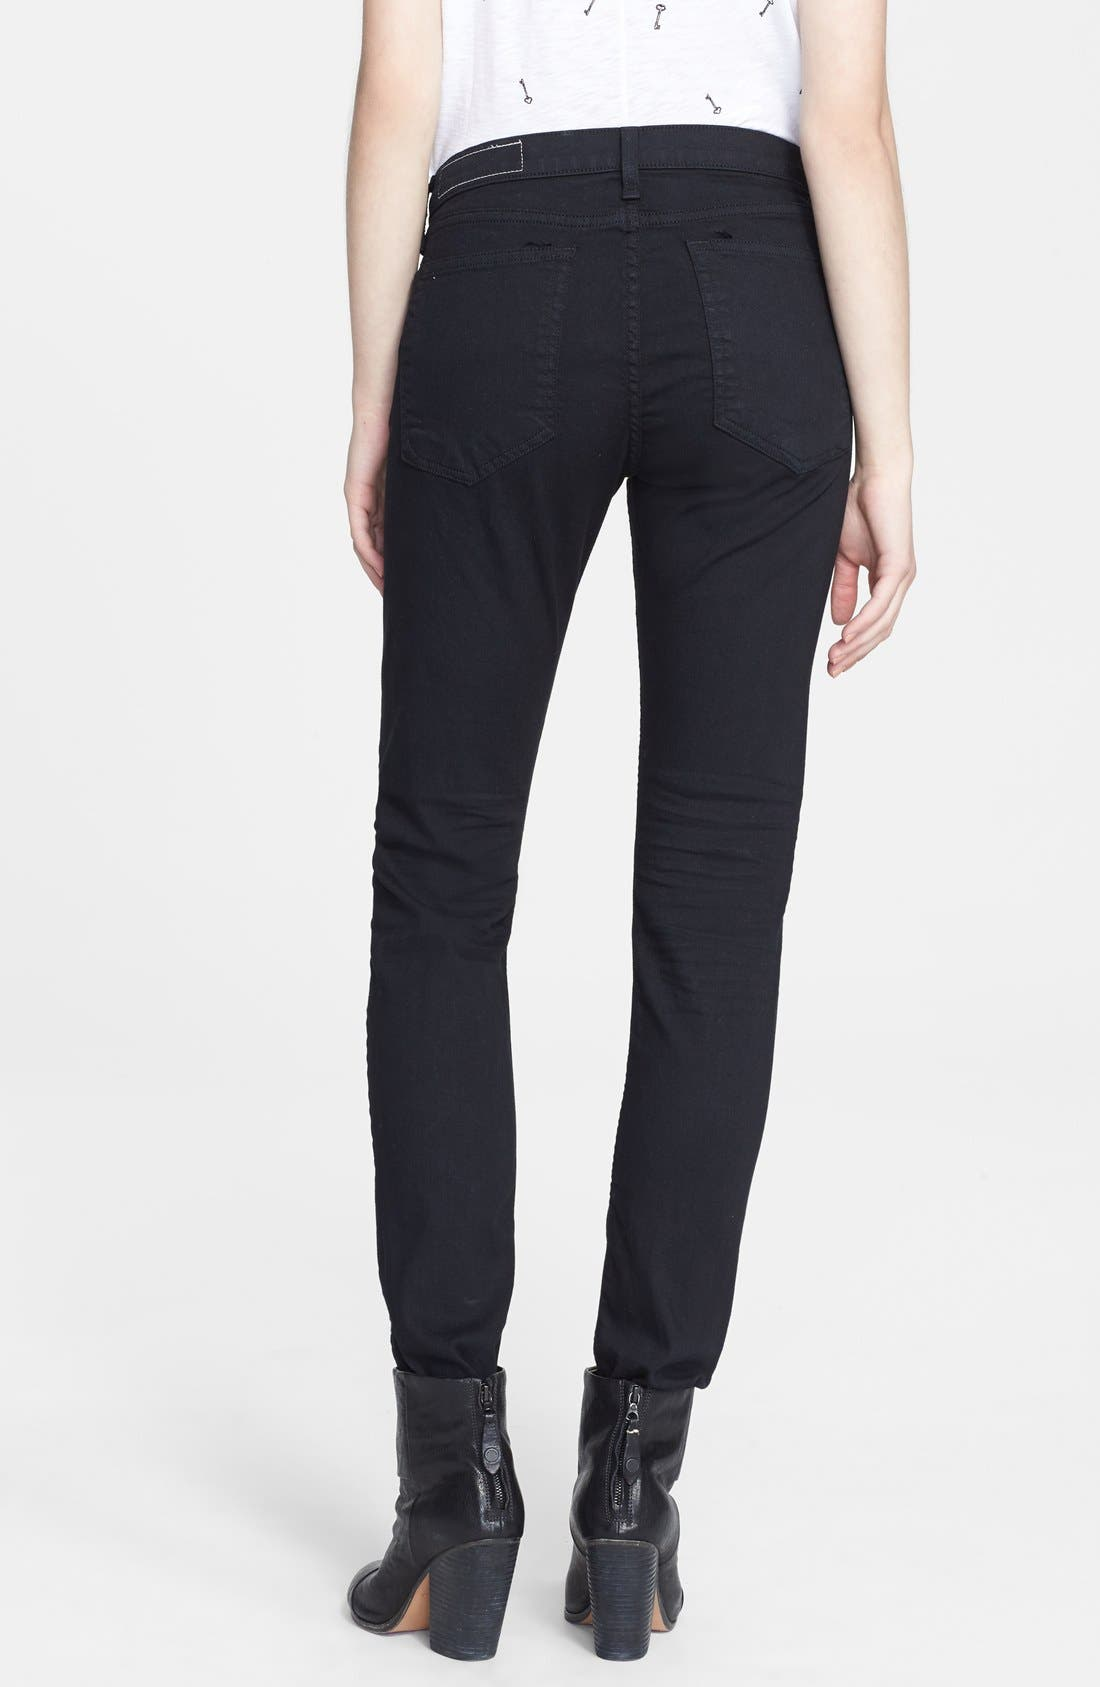 Alternate Image 2  - rag & bone/JEAN 'The Dre' Skinny Jeans (Aged Black)